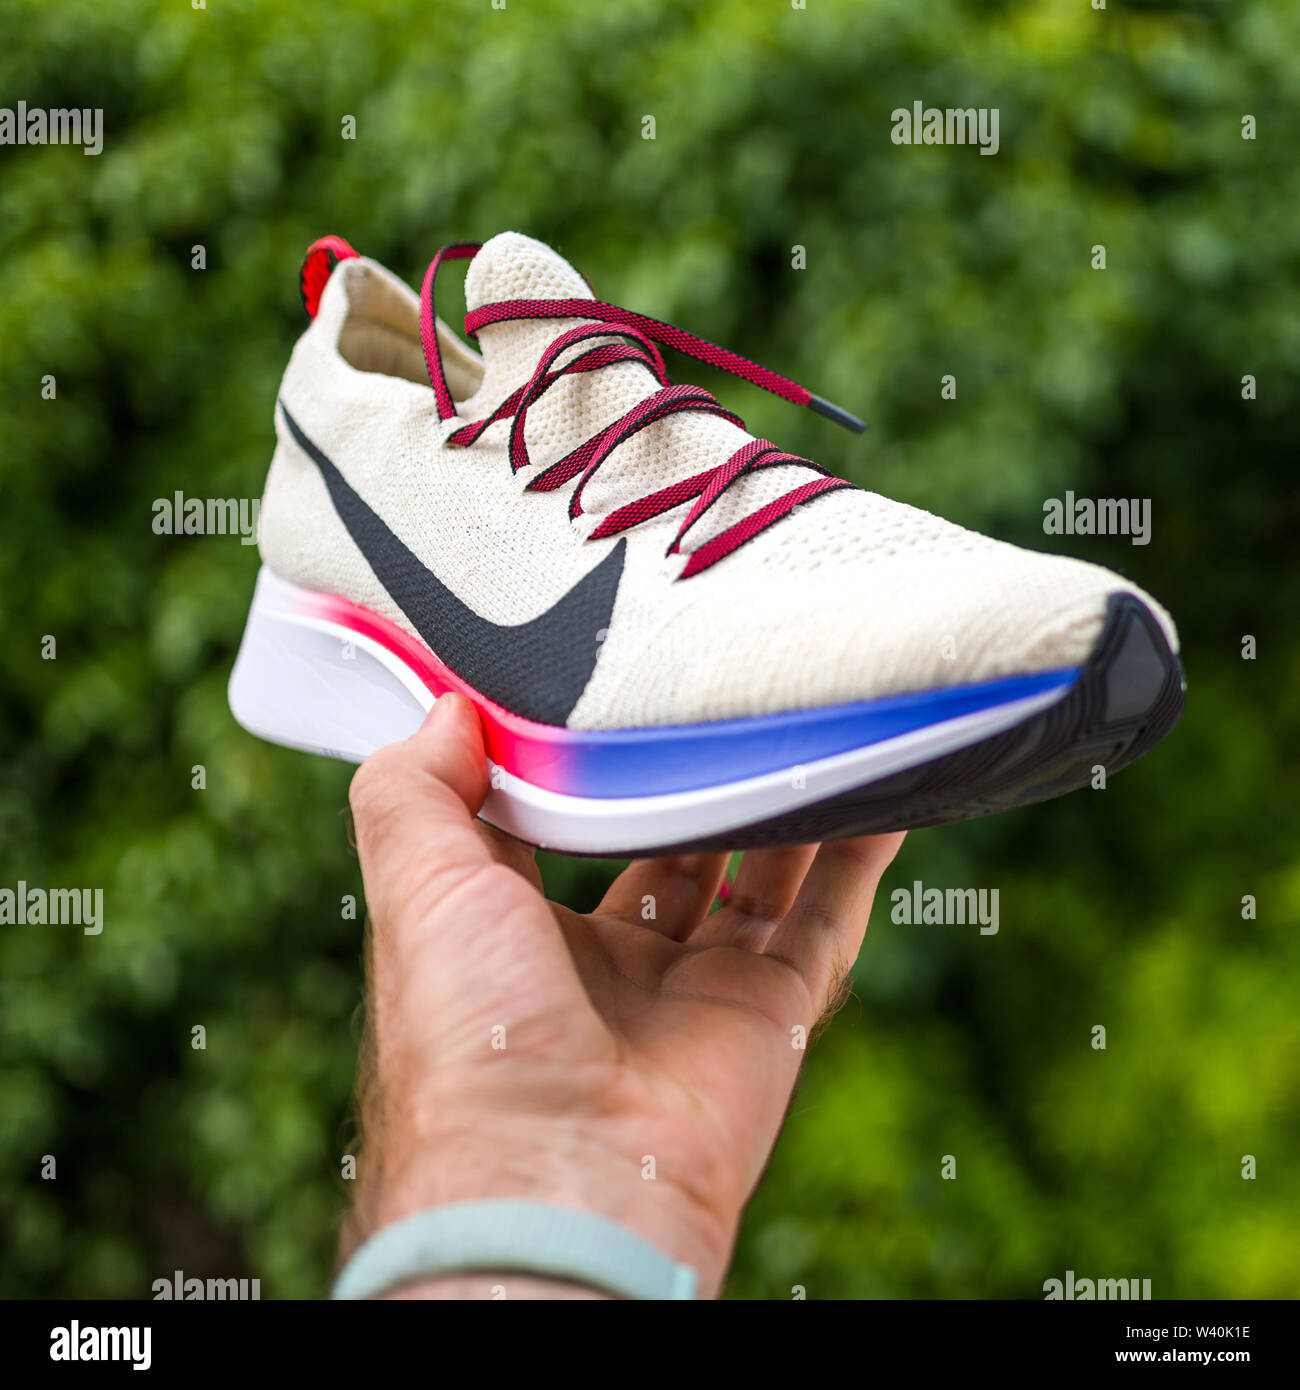 0cf6728e Paris, France - Jul 8, 2019: Athlete man hand holding presenting new running